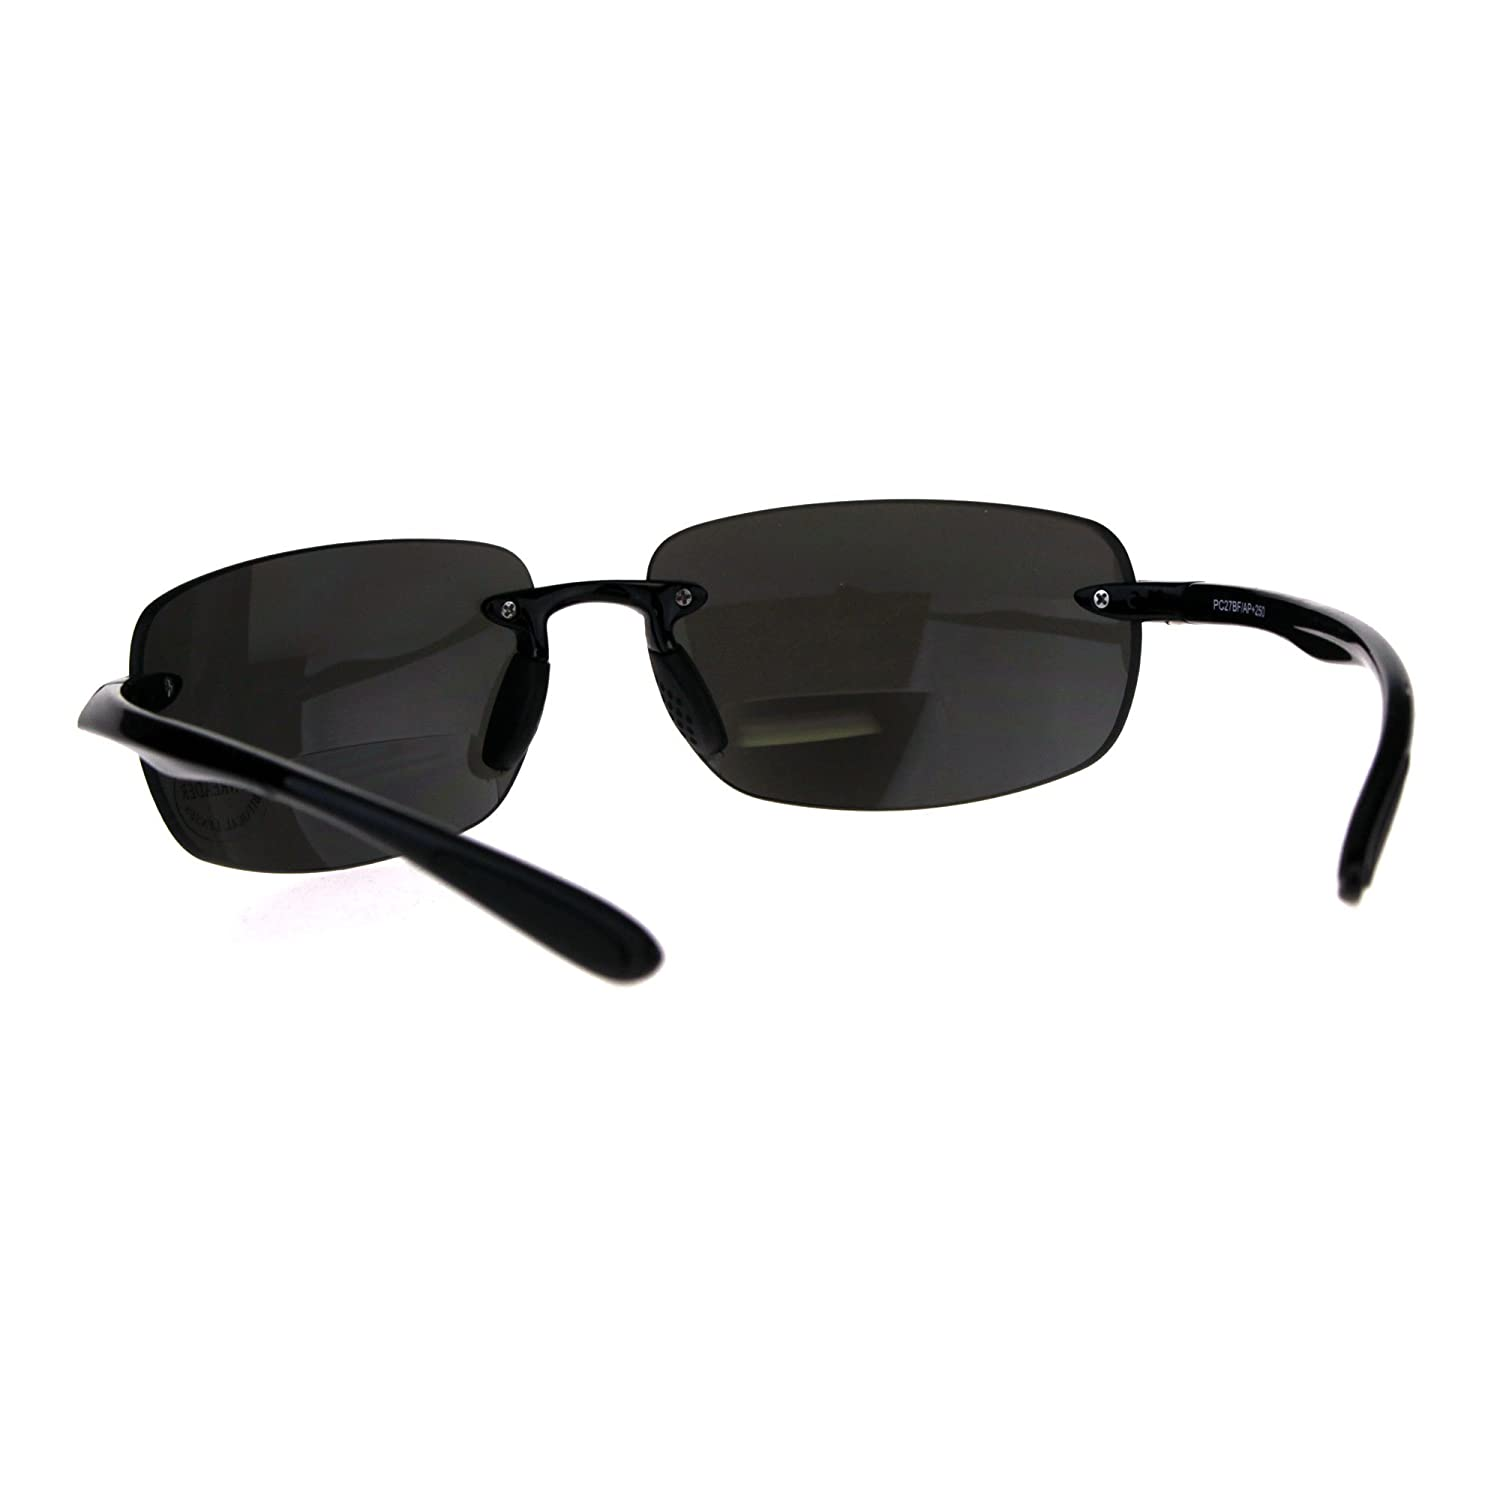 737ff16db99f Amazon.com: Mens Rimless Warp Sport Sunglasses With Bifocal Reading Lenses  All Black 1.0: Clothing